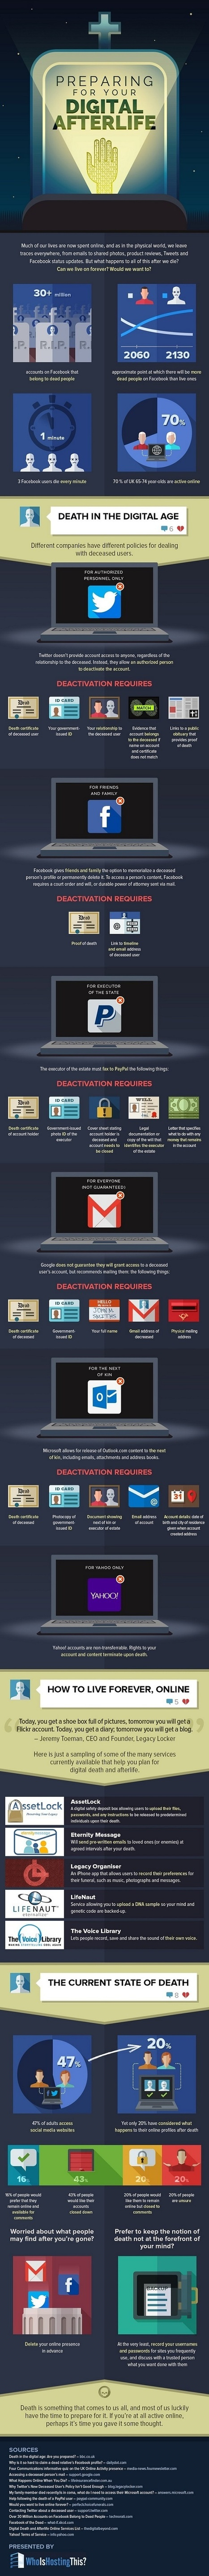 Preparing for Your Digital Afterlife [Infographic]   Digital-News on Scoop.it today   Scoop.it